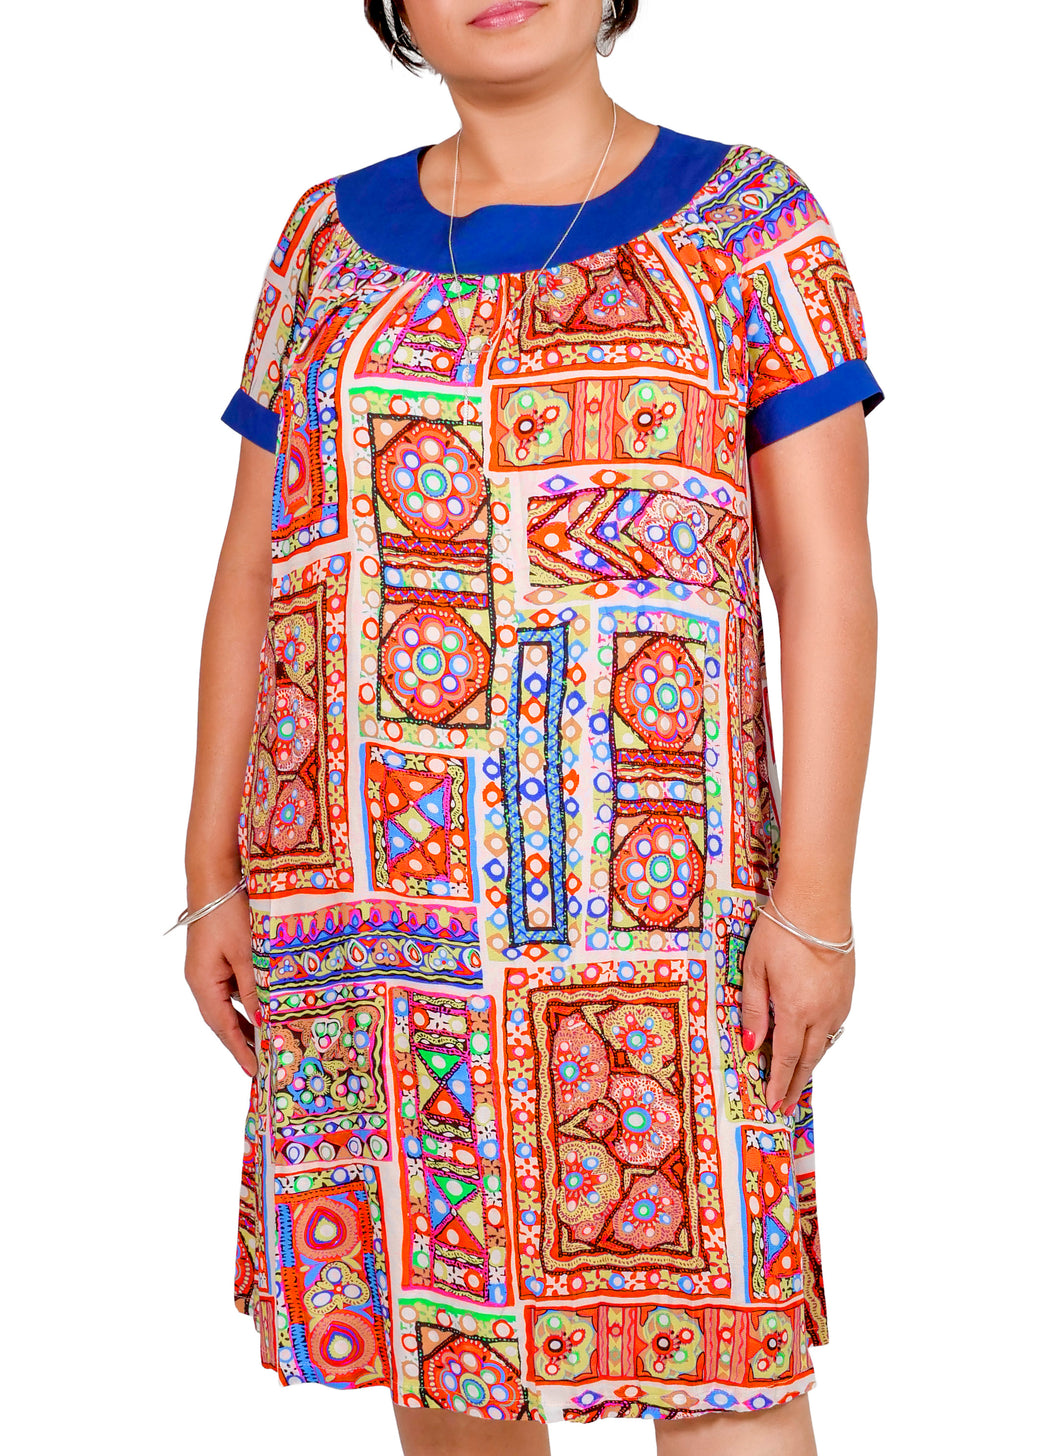 I Am A Goddess Tribal Print Dress ITA-209